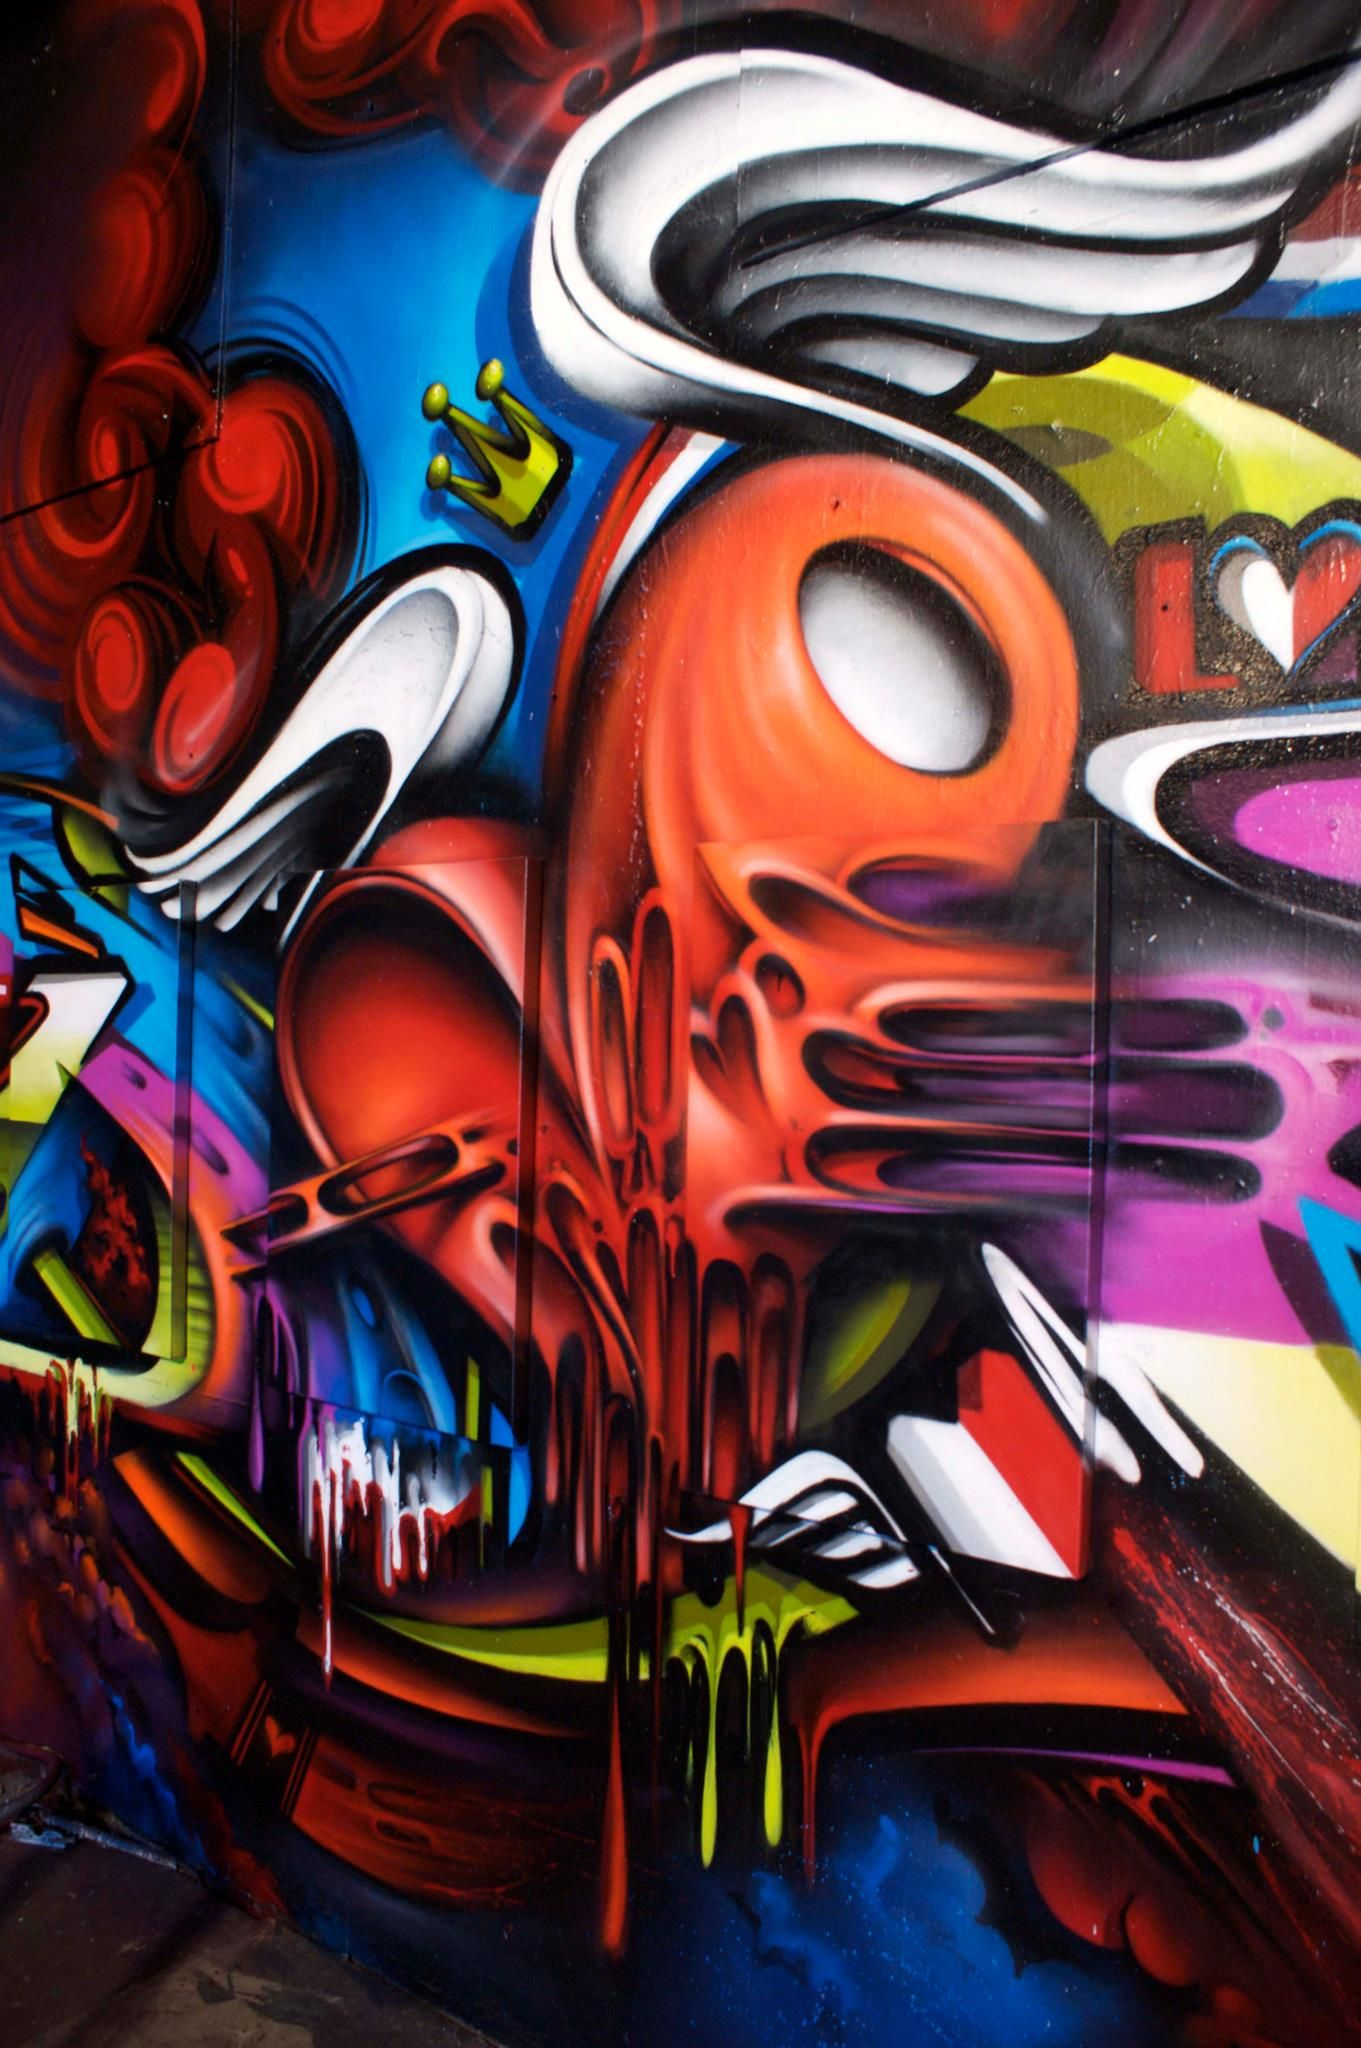 Graffiti art meaning - This Graffiti Is So Awesome It Looks Like It Has So Much Meaning With The